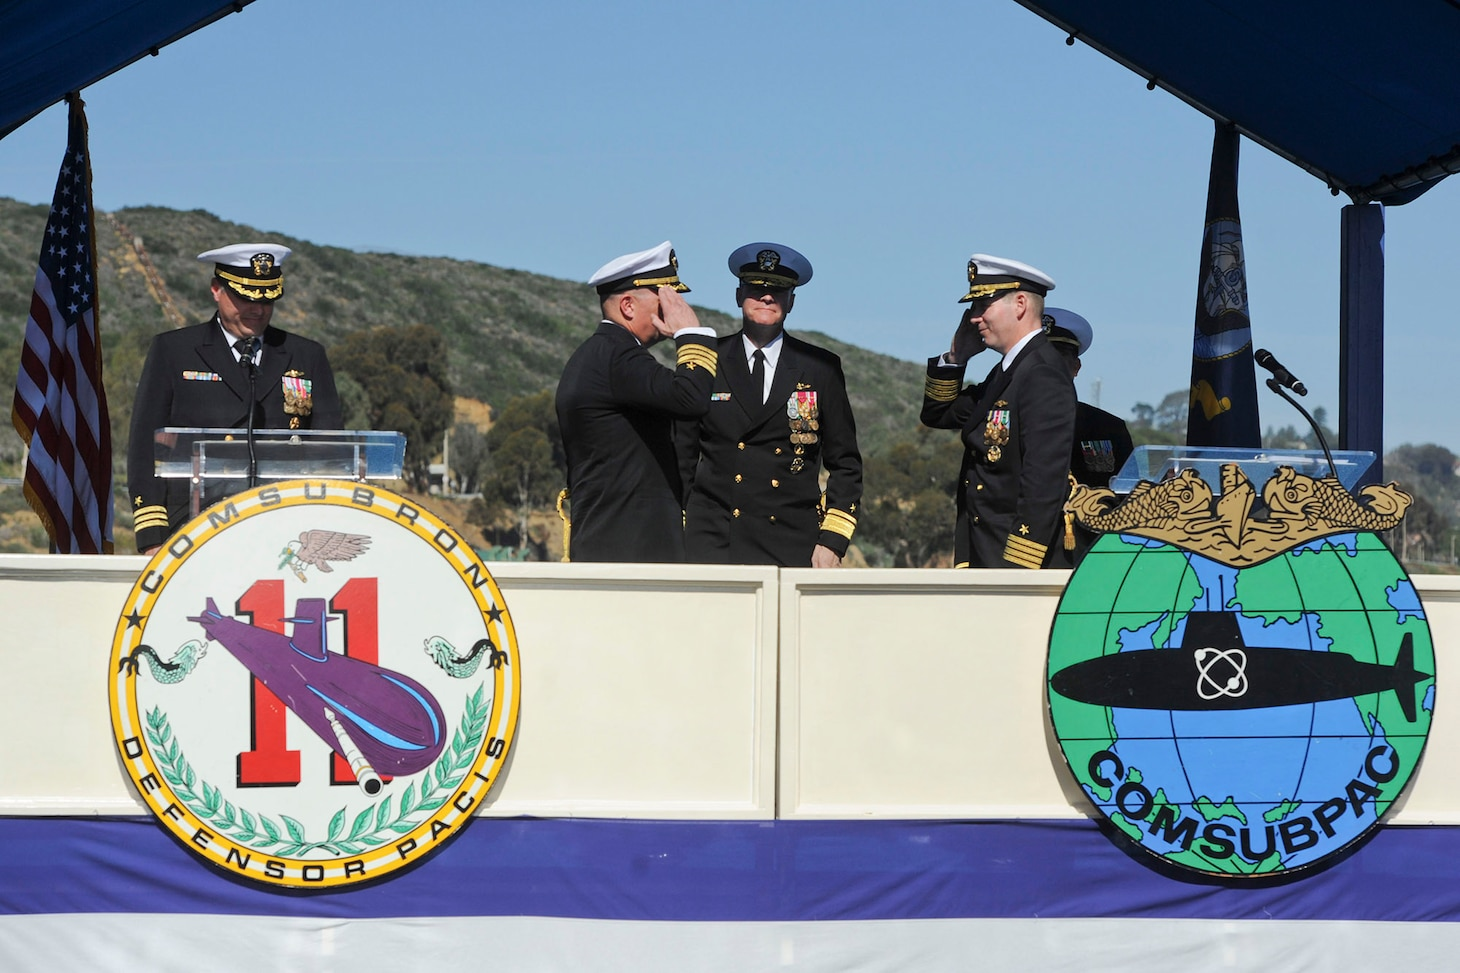 160212-N-TW634-162